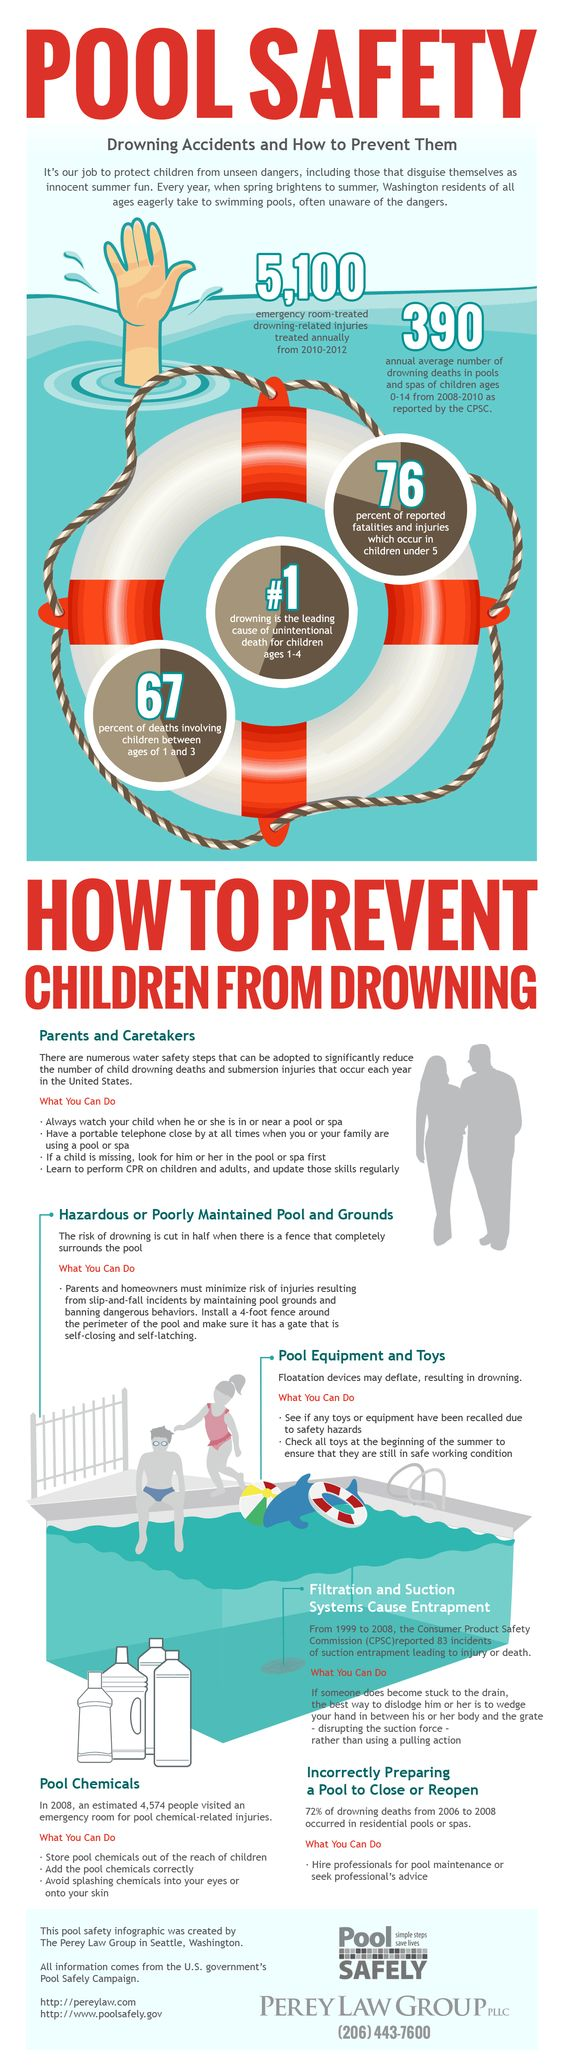 Pool Safety Drowning Accidents And How To Prevent Them Home Safety News And Tips Pinterest